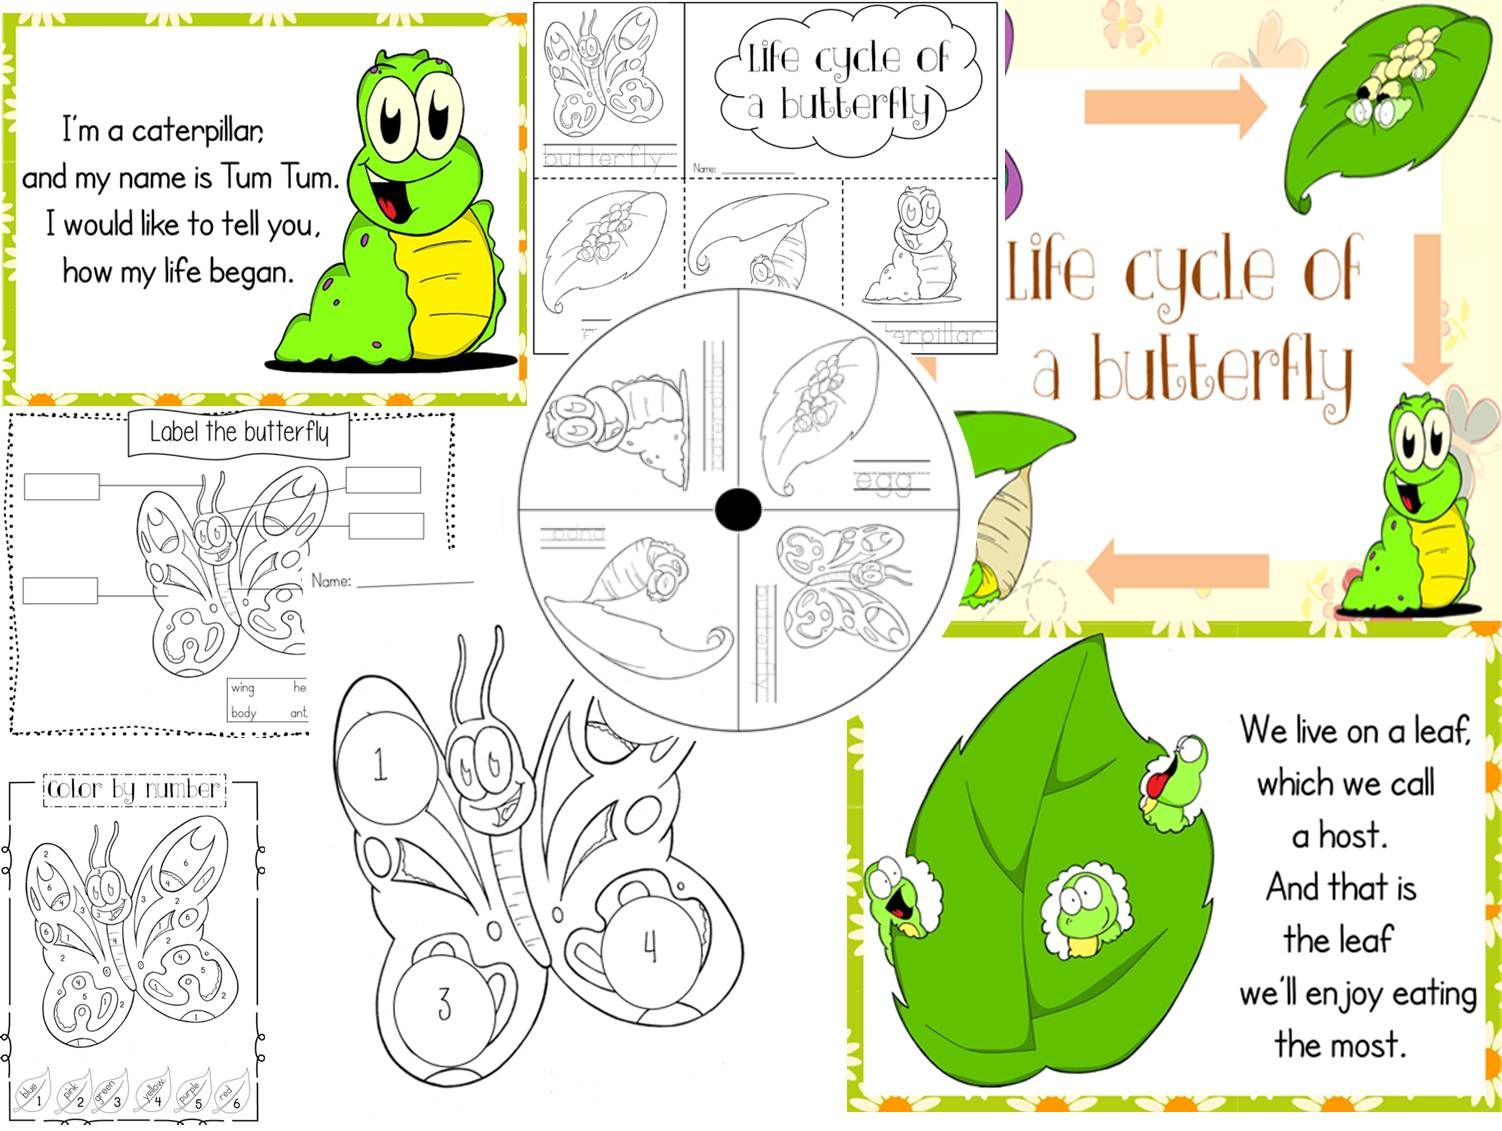 Life Cycle Of A Butterfly Pack Includes Everything From